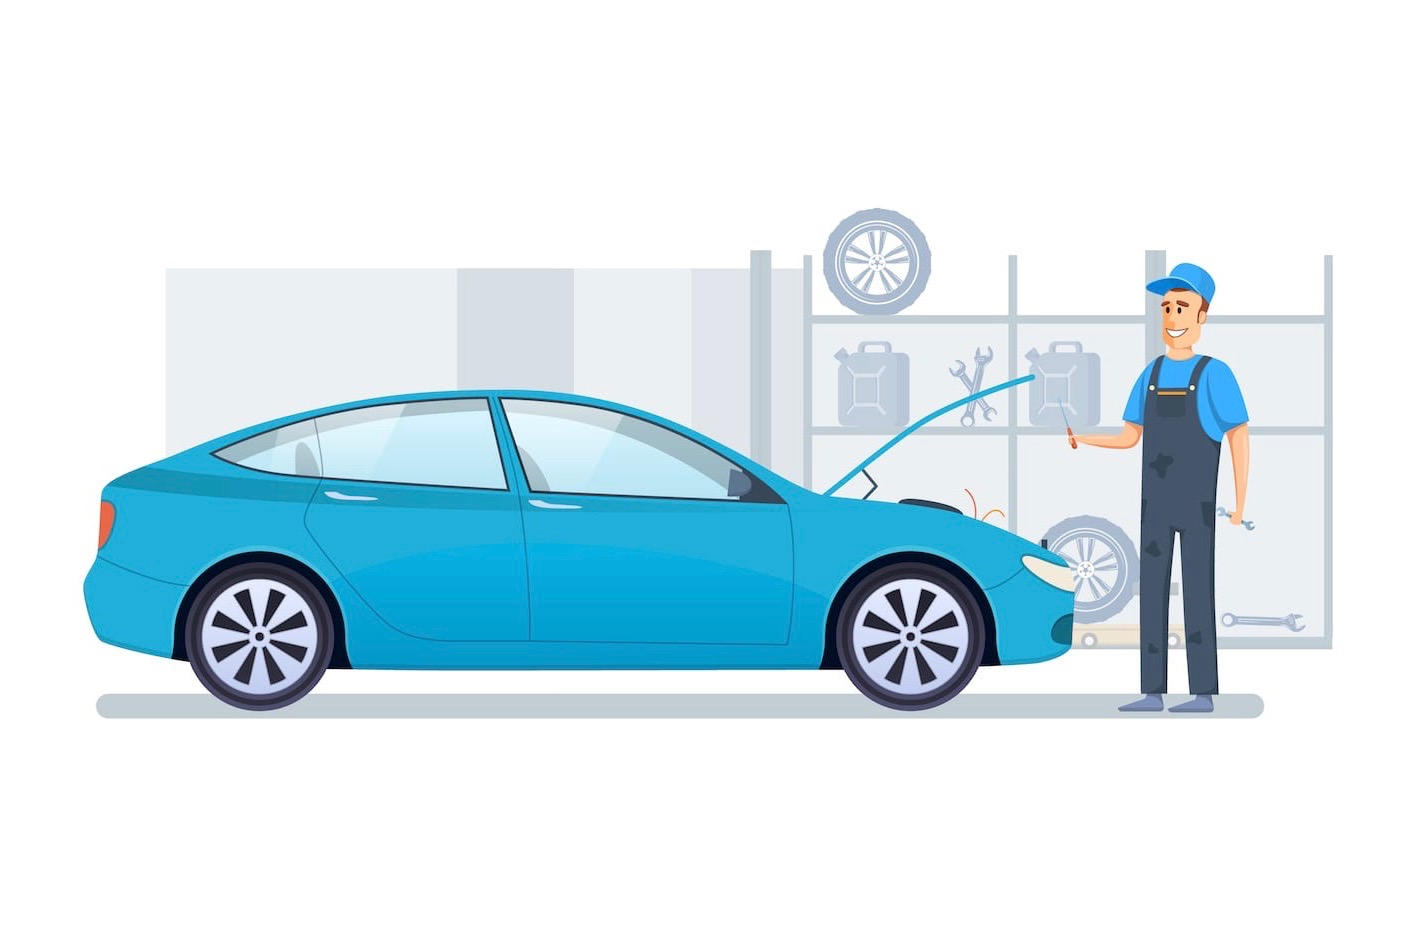 How To Find A Good Auto Service Repair Shop